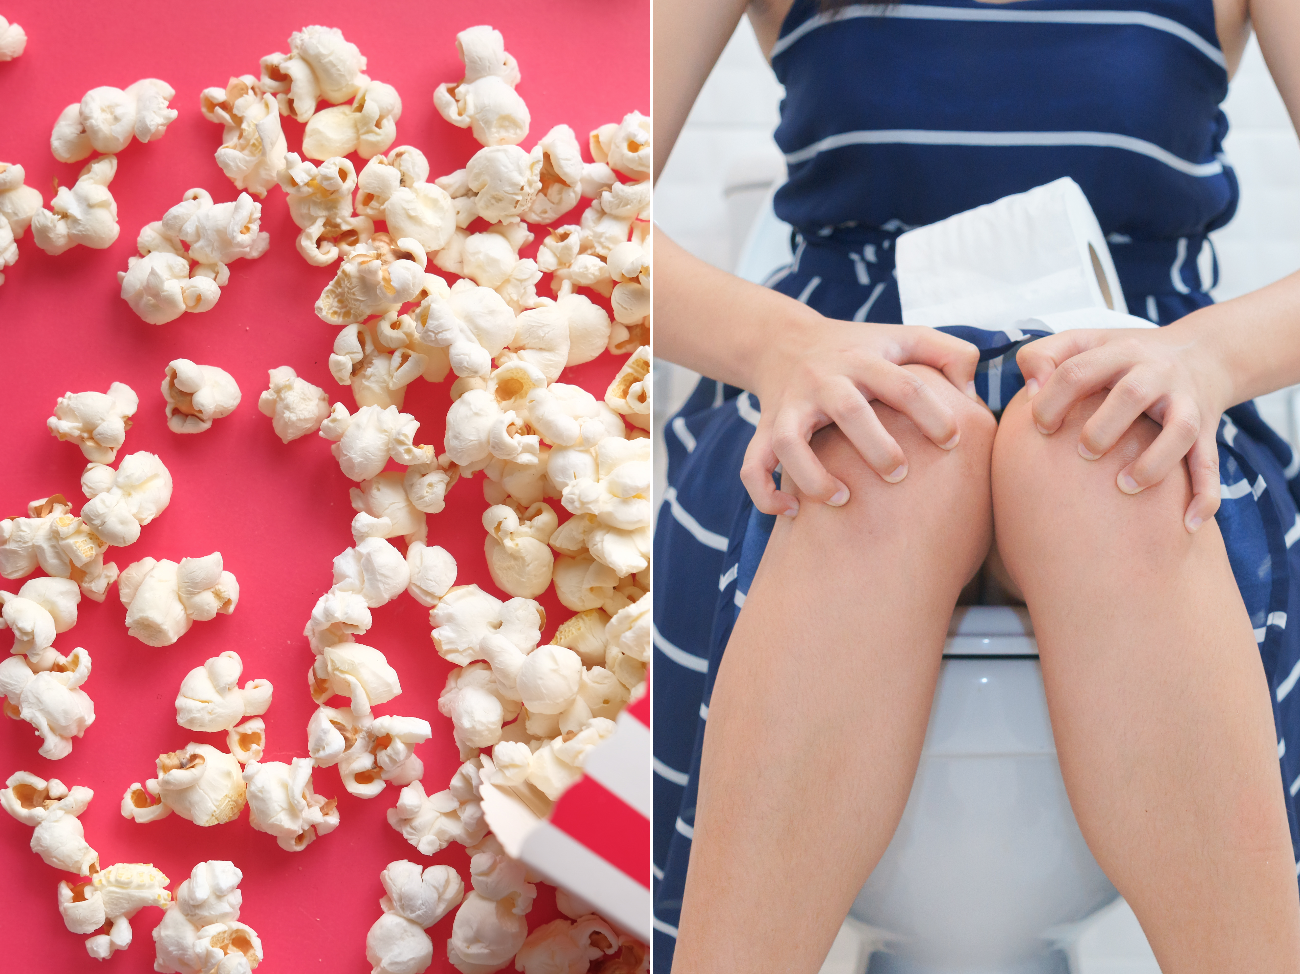 Foods That Make You Poop: 20 Foods That Can Help Relieve Constipation